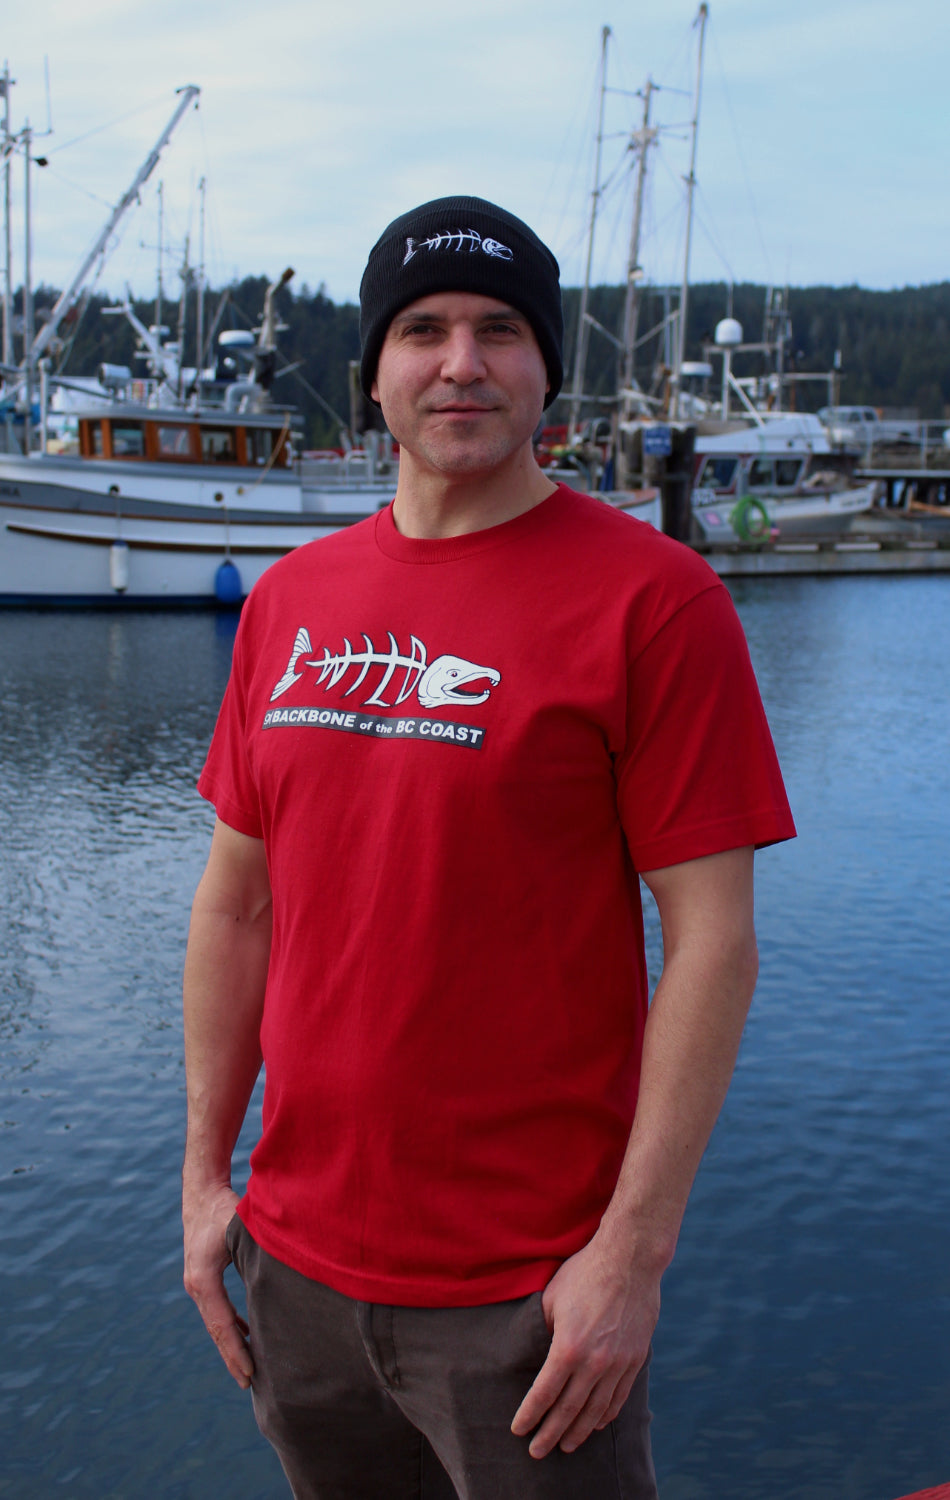 WILD Backbone of the BC Coast T Shirt